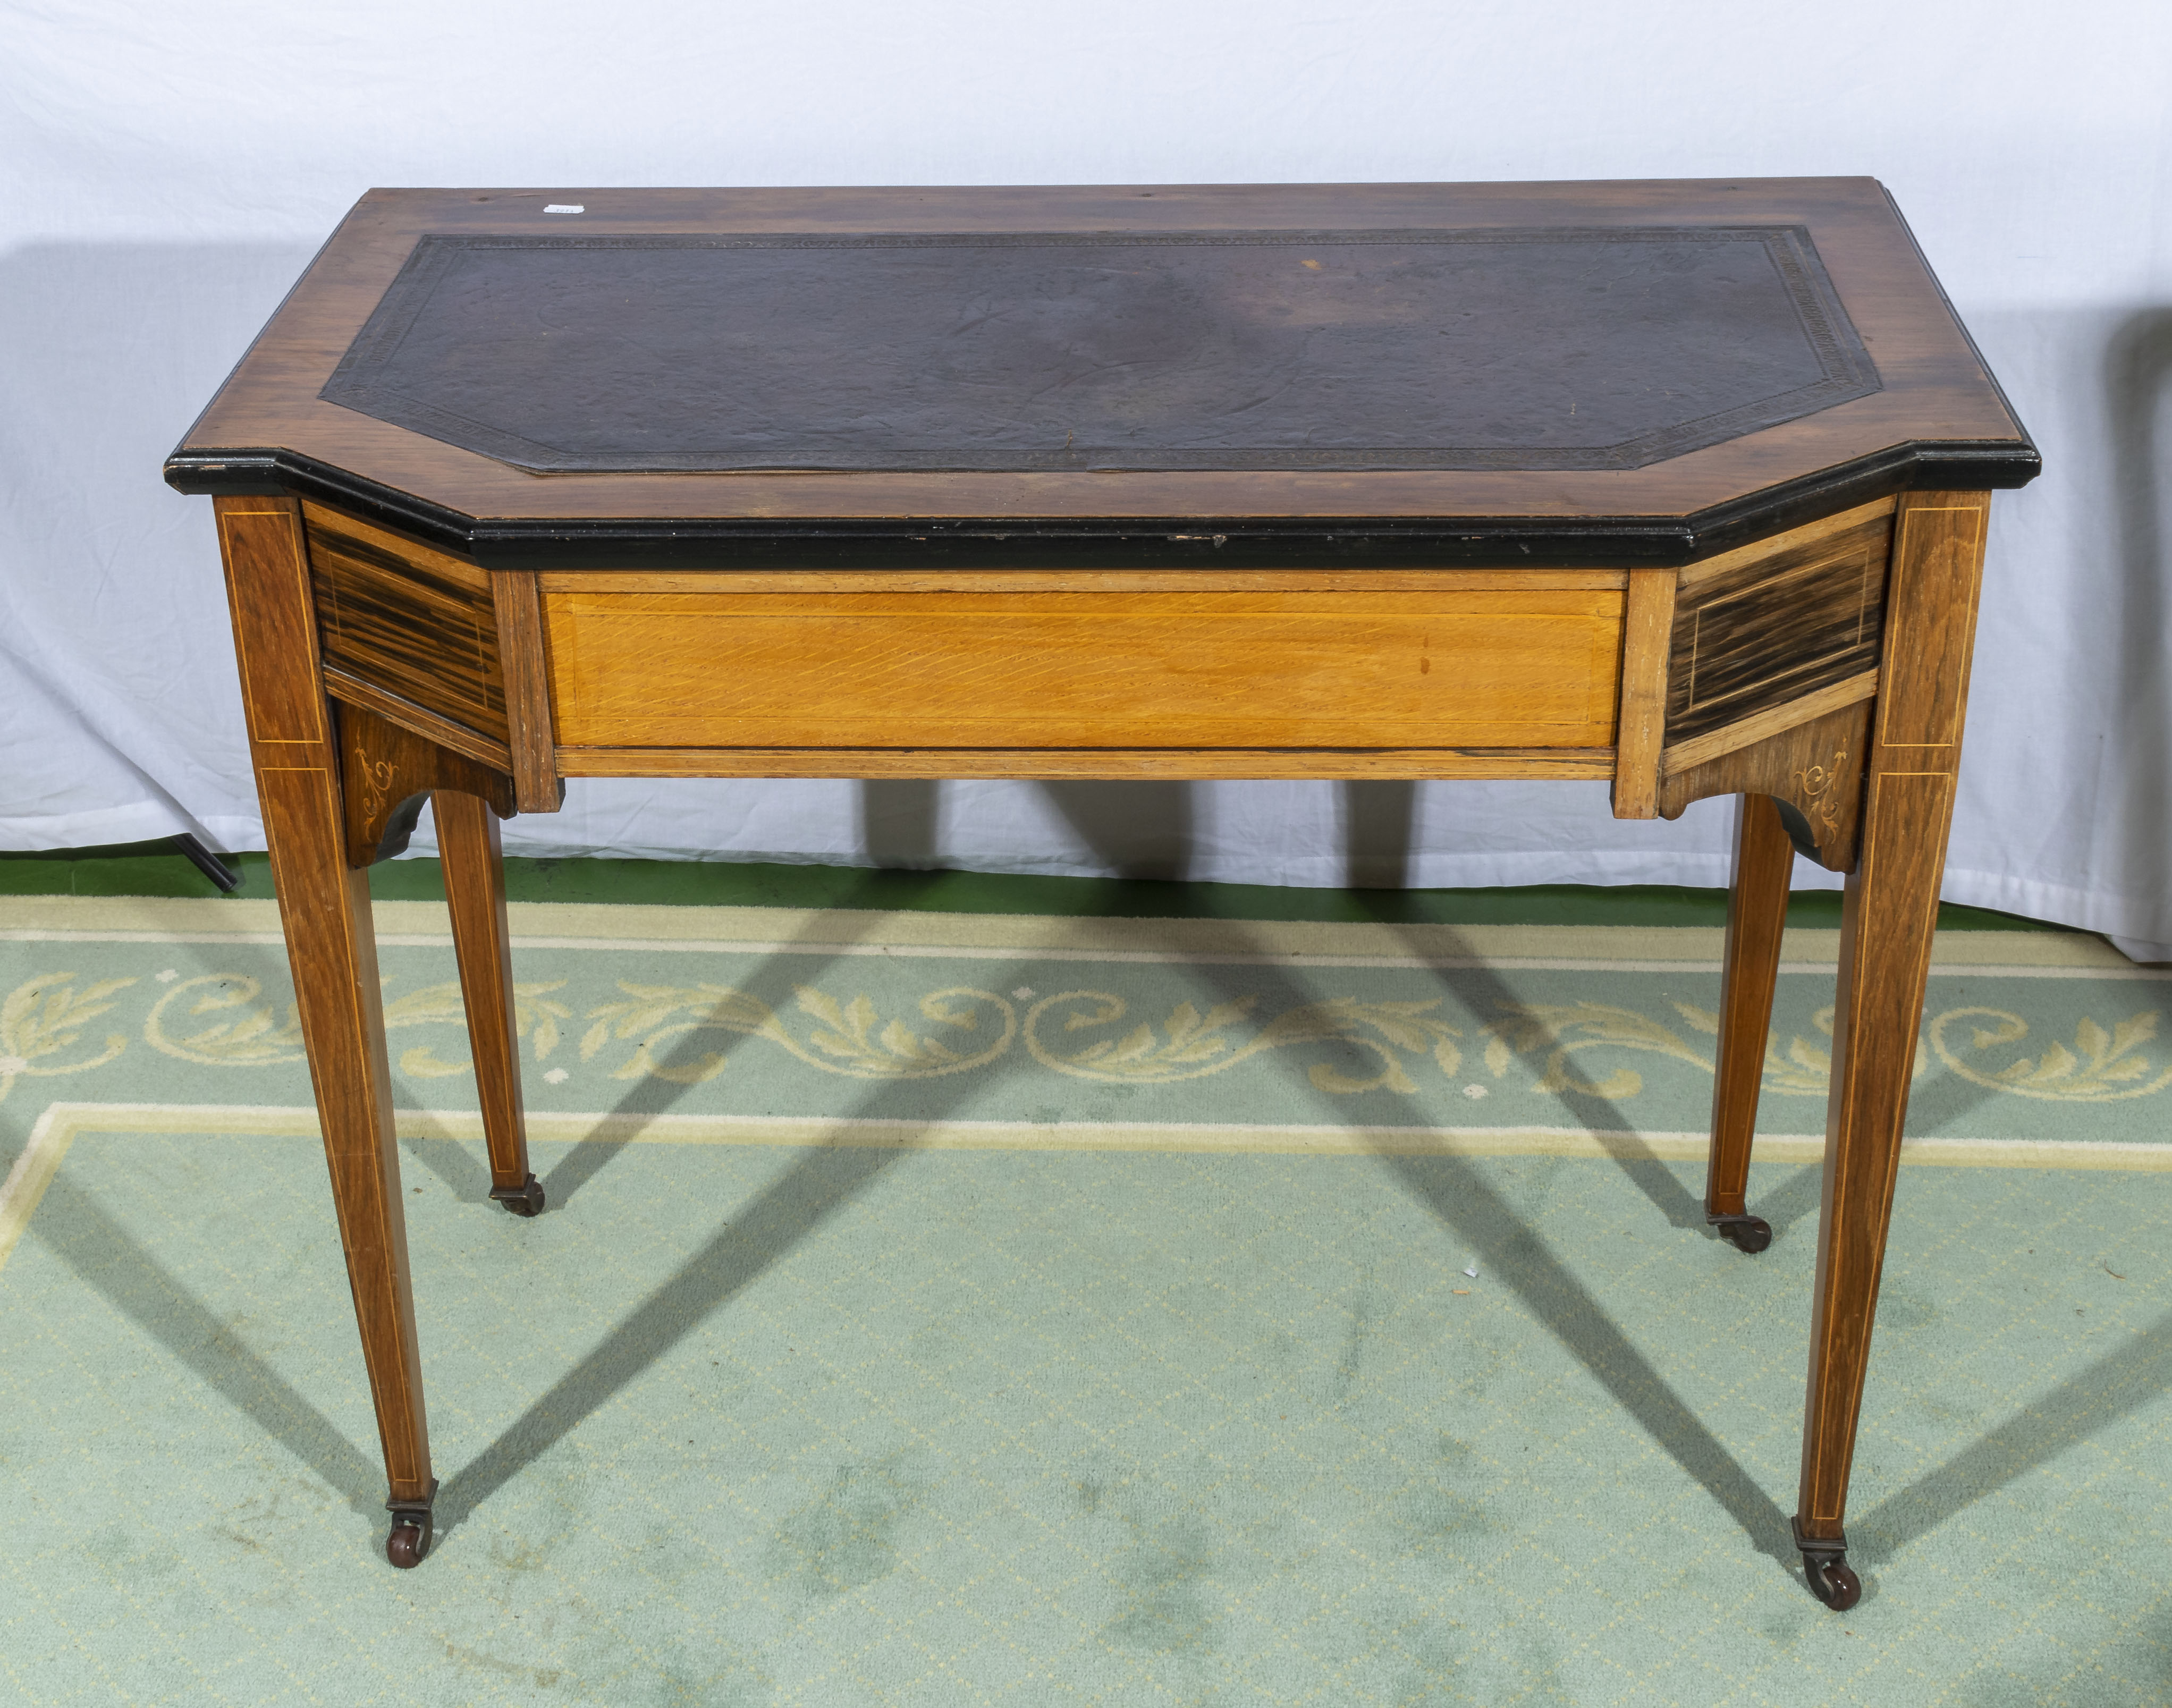 A side writing table. 90cm x 50cm